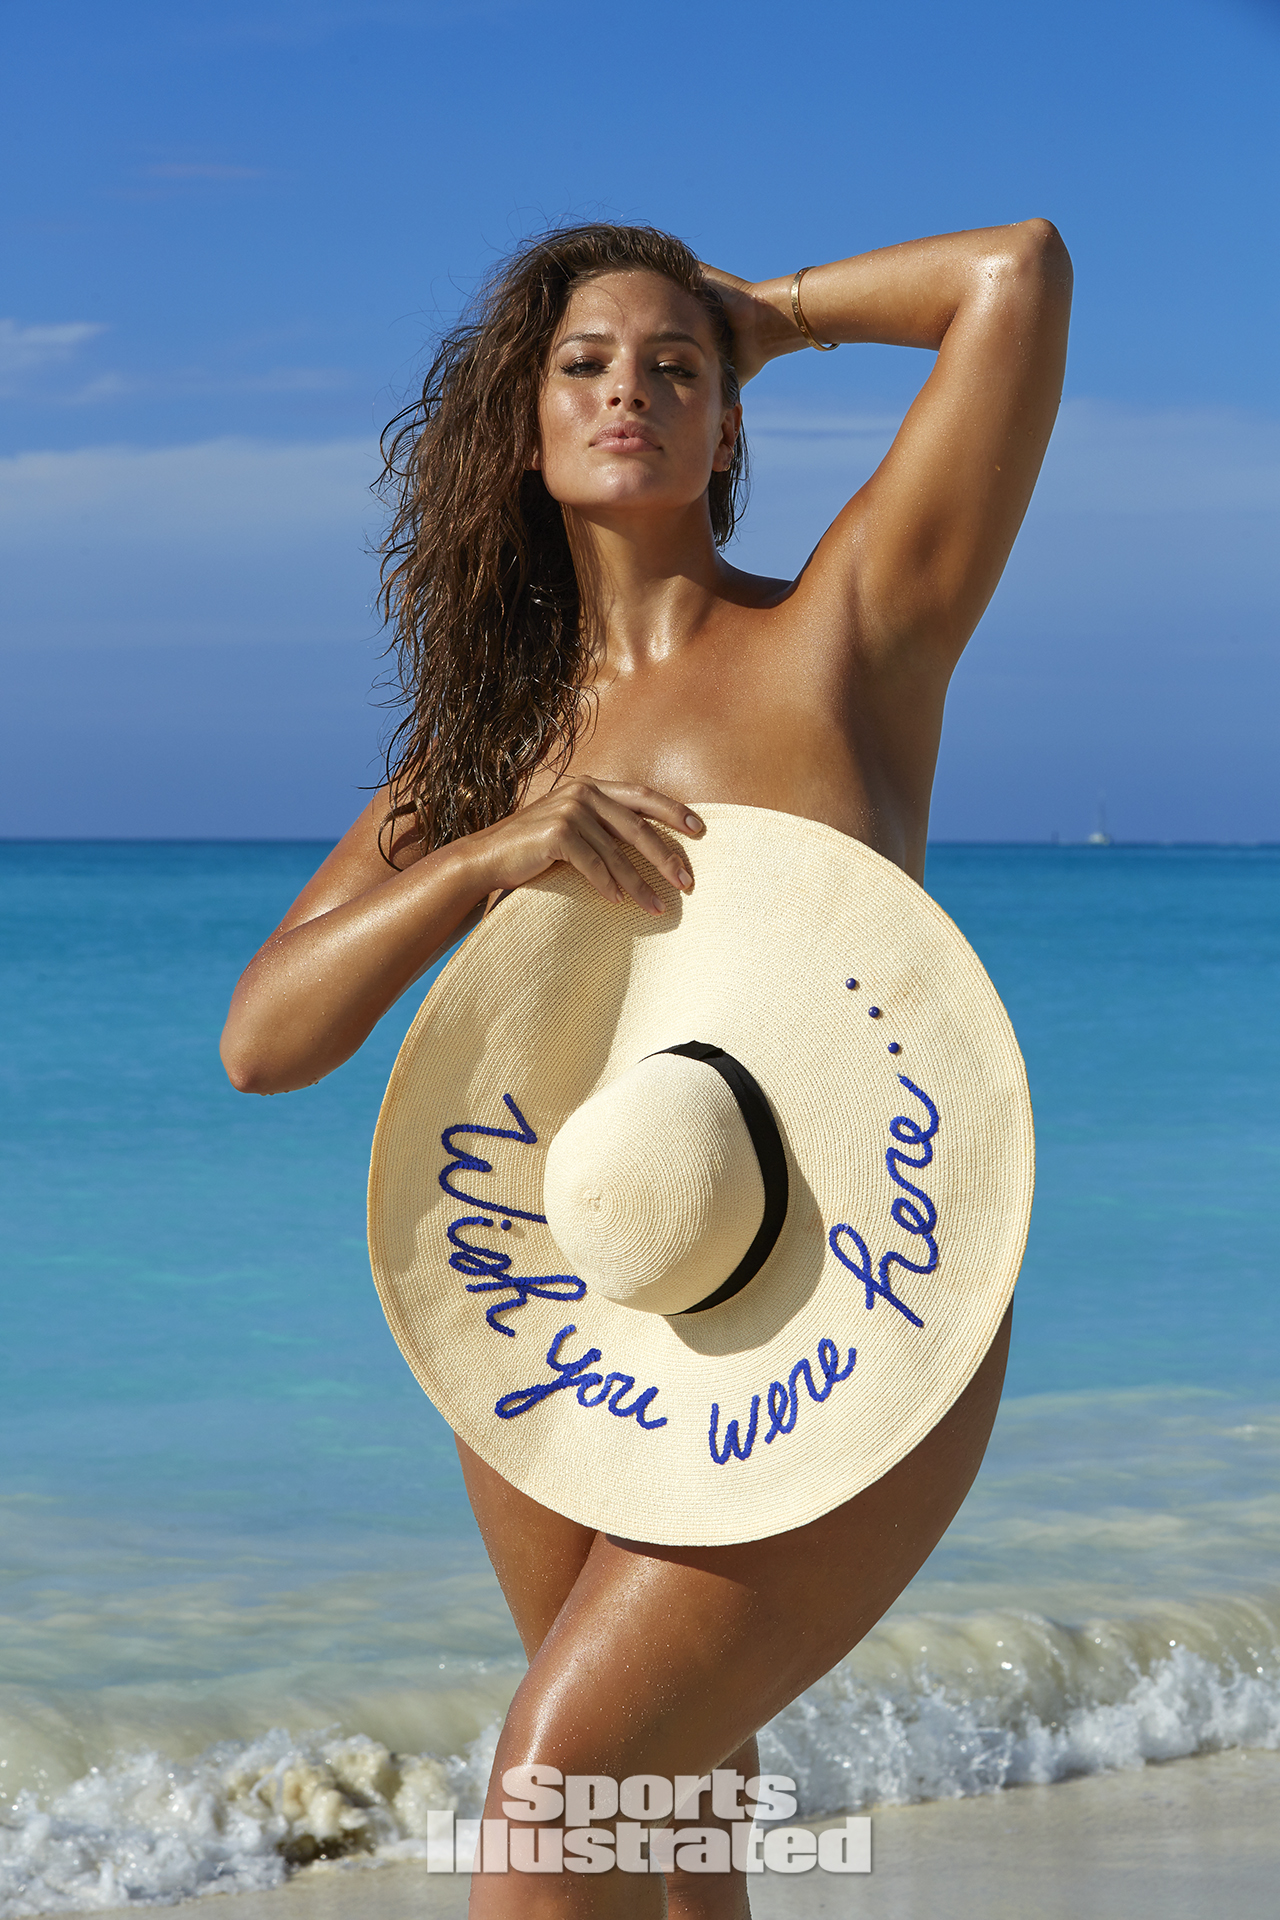 Ashley Graham was photographed by James Macari in Turks & Caicos. Swimsuit by Eugenia Kim.